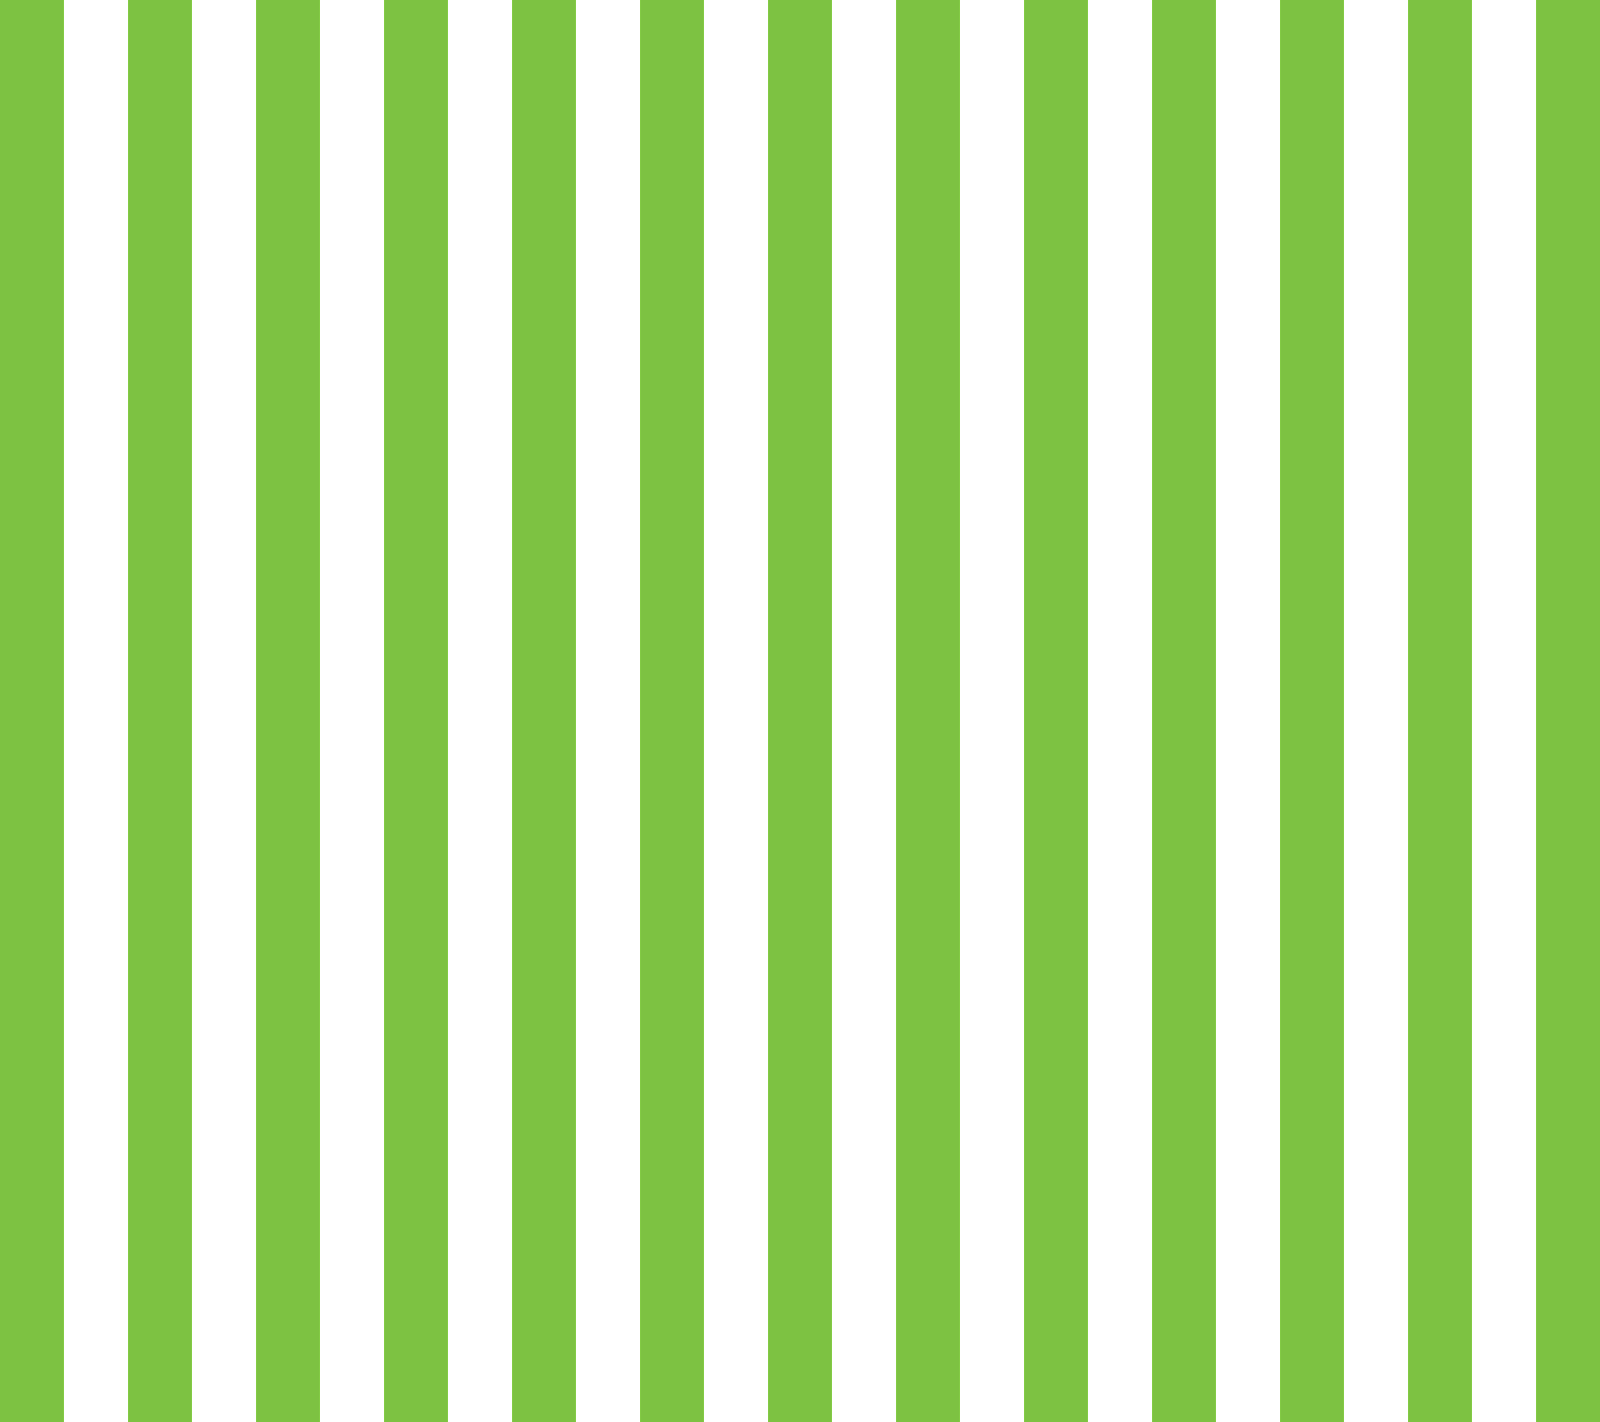 Stripes background png. Green and white striped